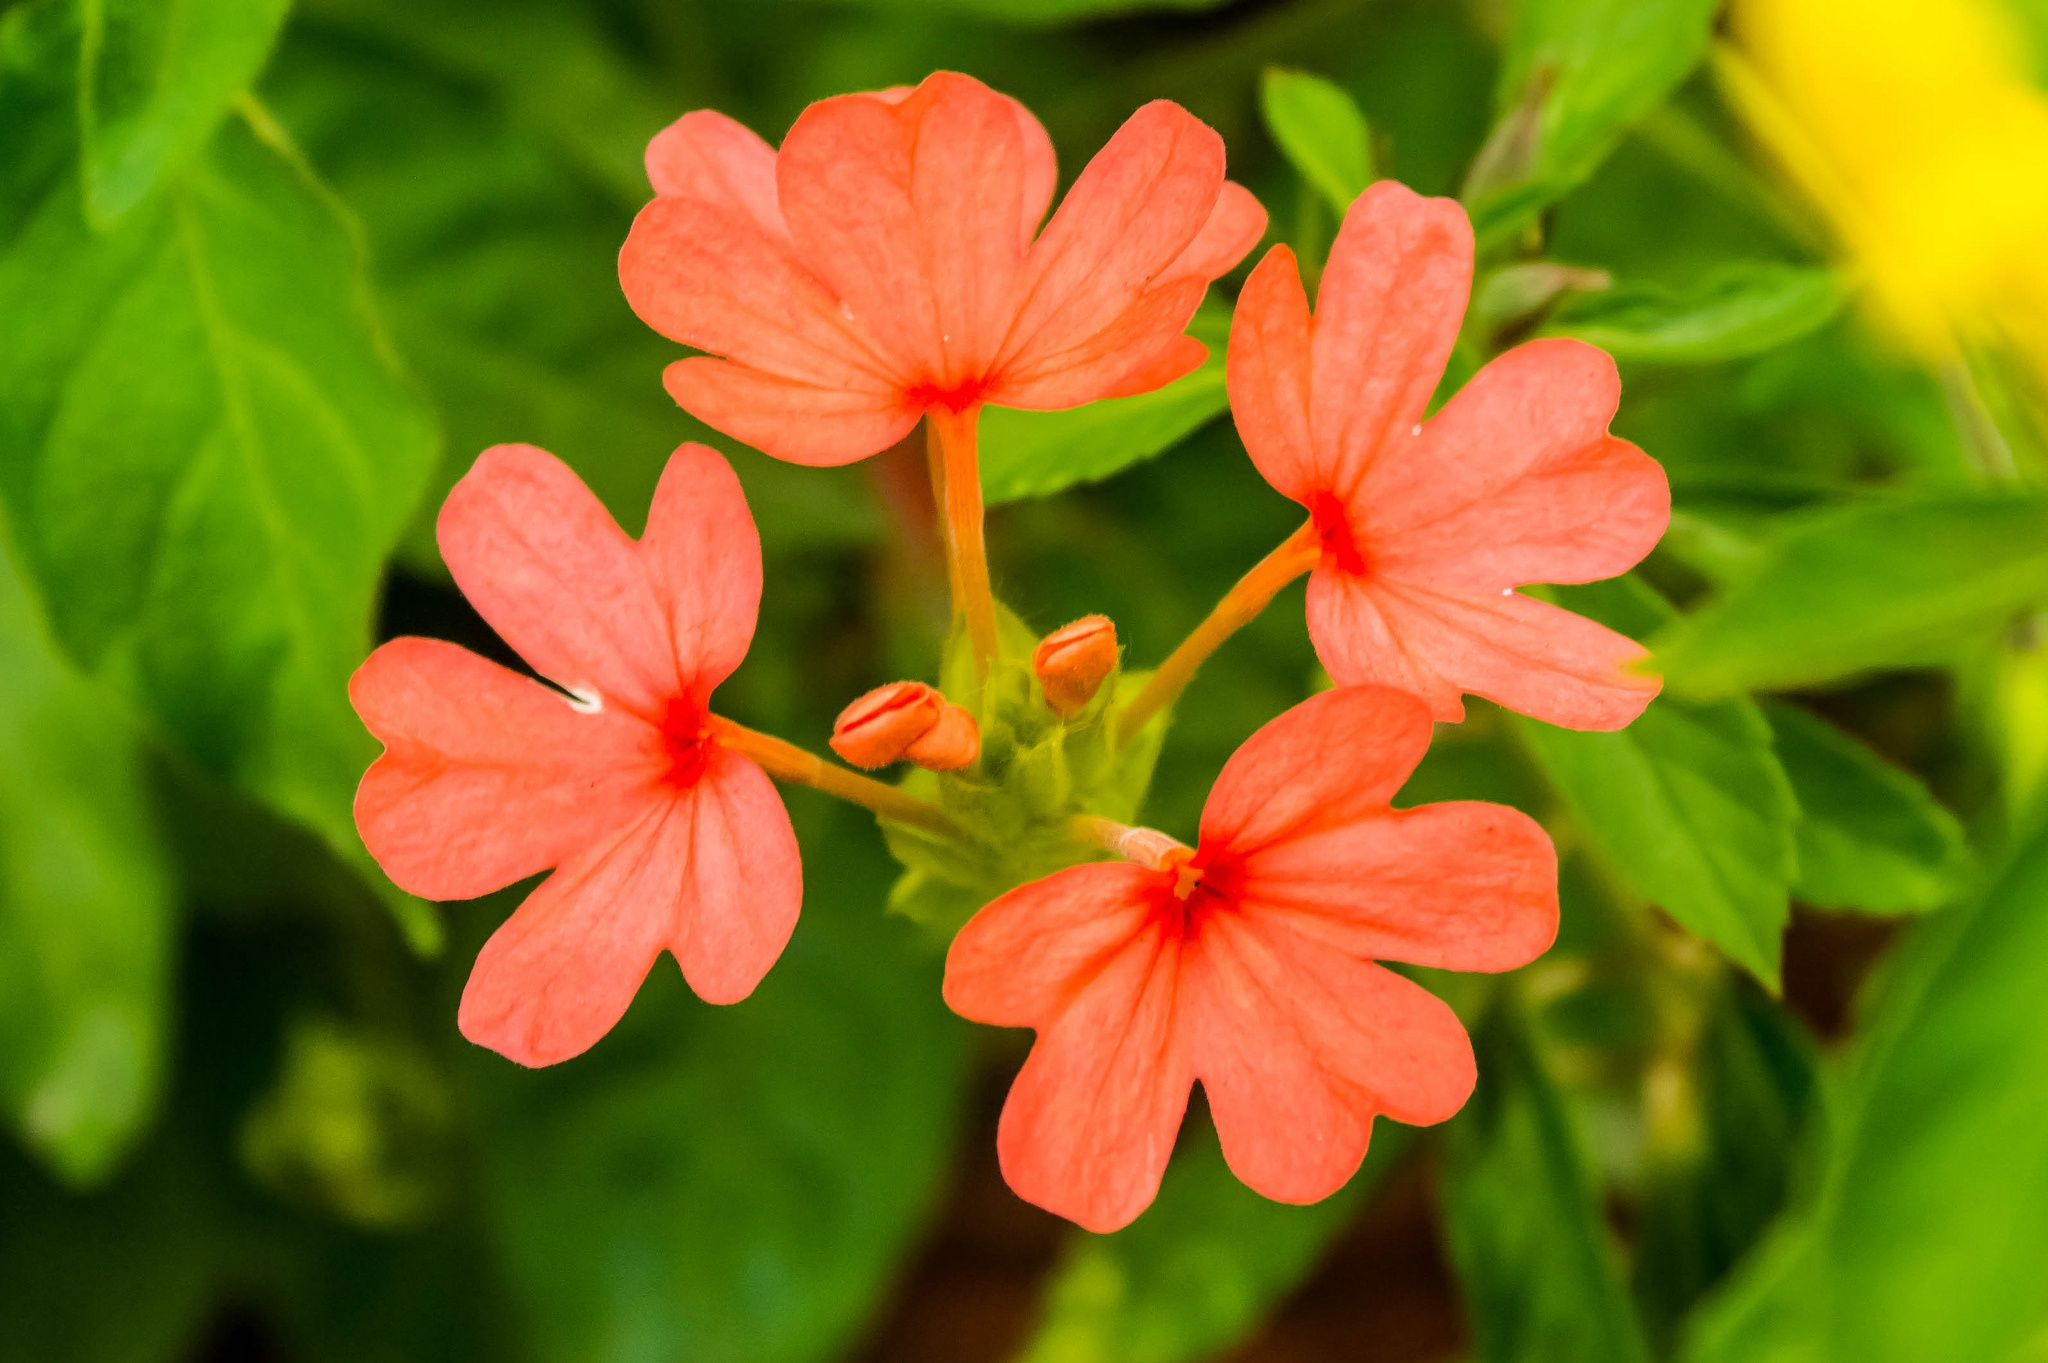 crossandra orange marmalade is one of our favorite colorful flowers that do well in shade